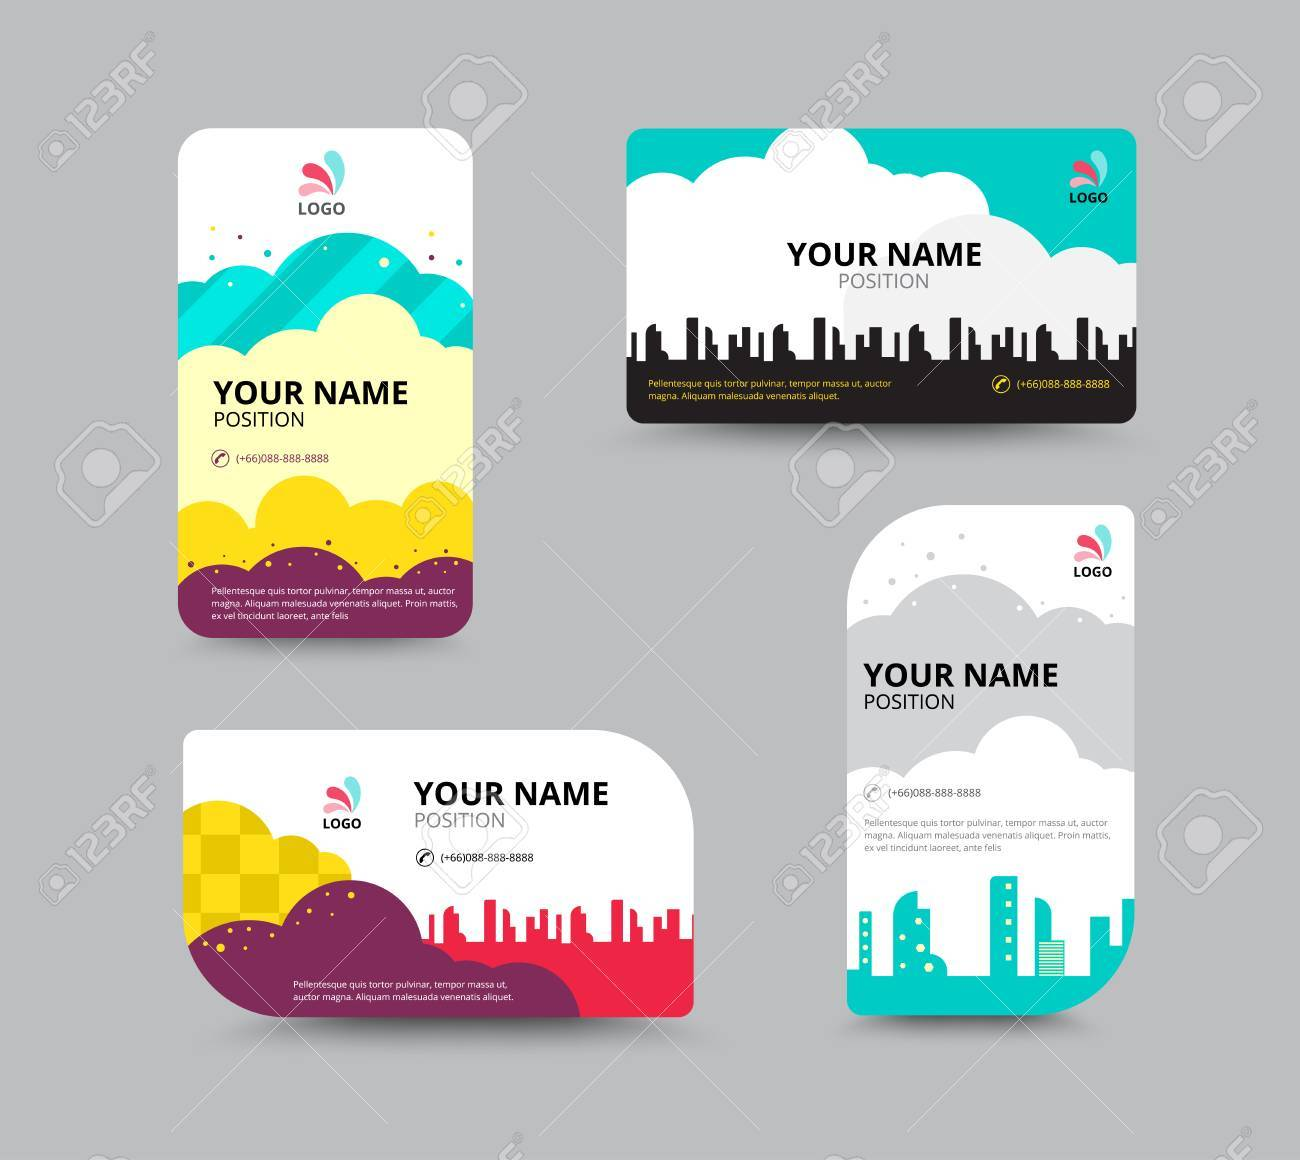 Business card template business card layout design vector business card template business card layout design vector illustration stock vector 41181547 magicingreecefo Choice Image